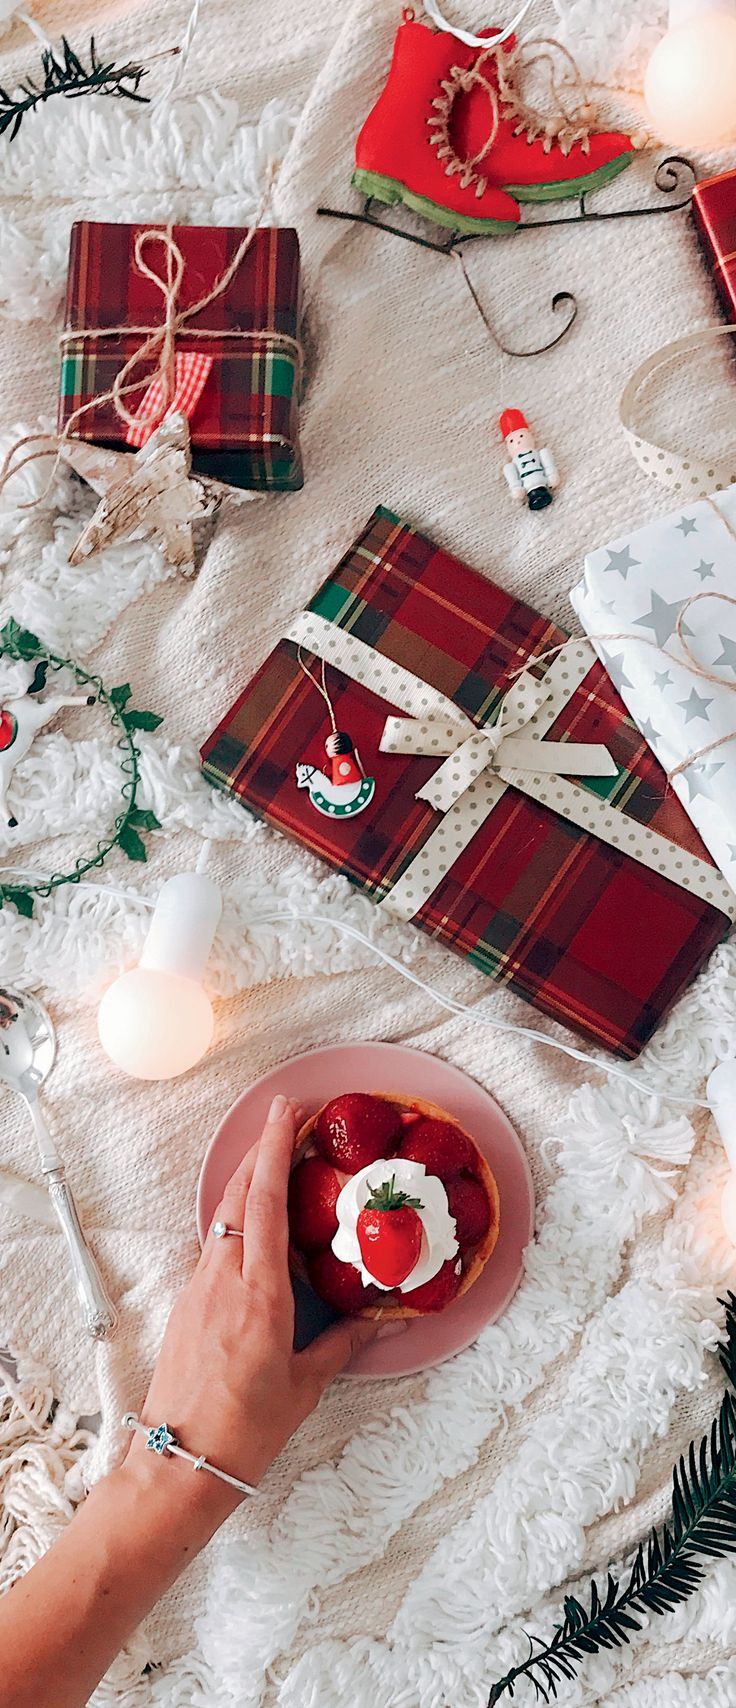 Christmas is just around the corner! Blogger Masha Rotar is busy wrapping gifts for her best friends while sporting winter-inspired PANDORA charms and rings.